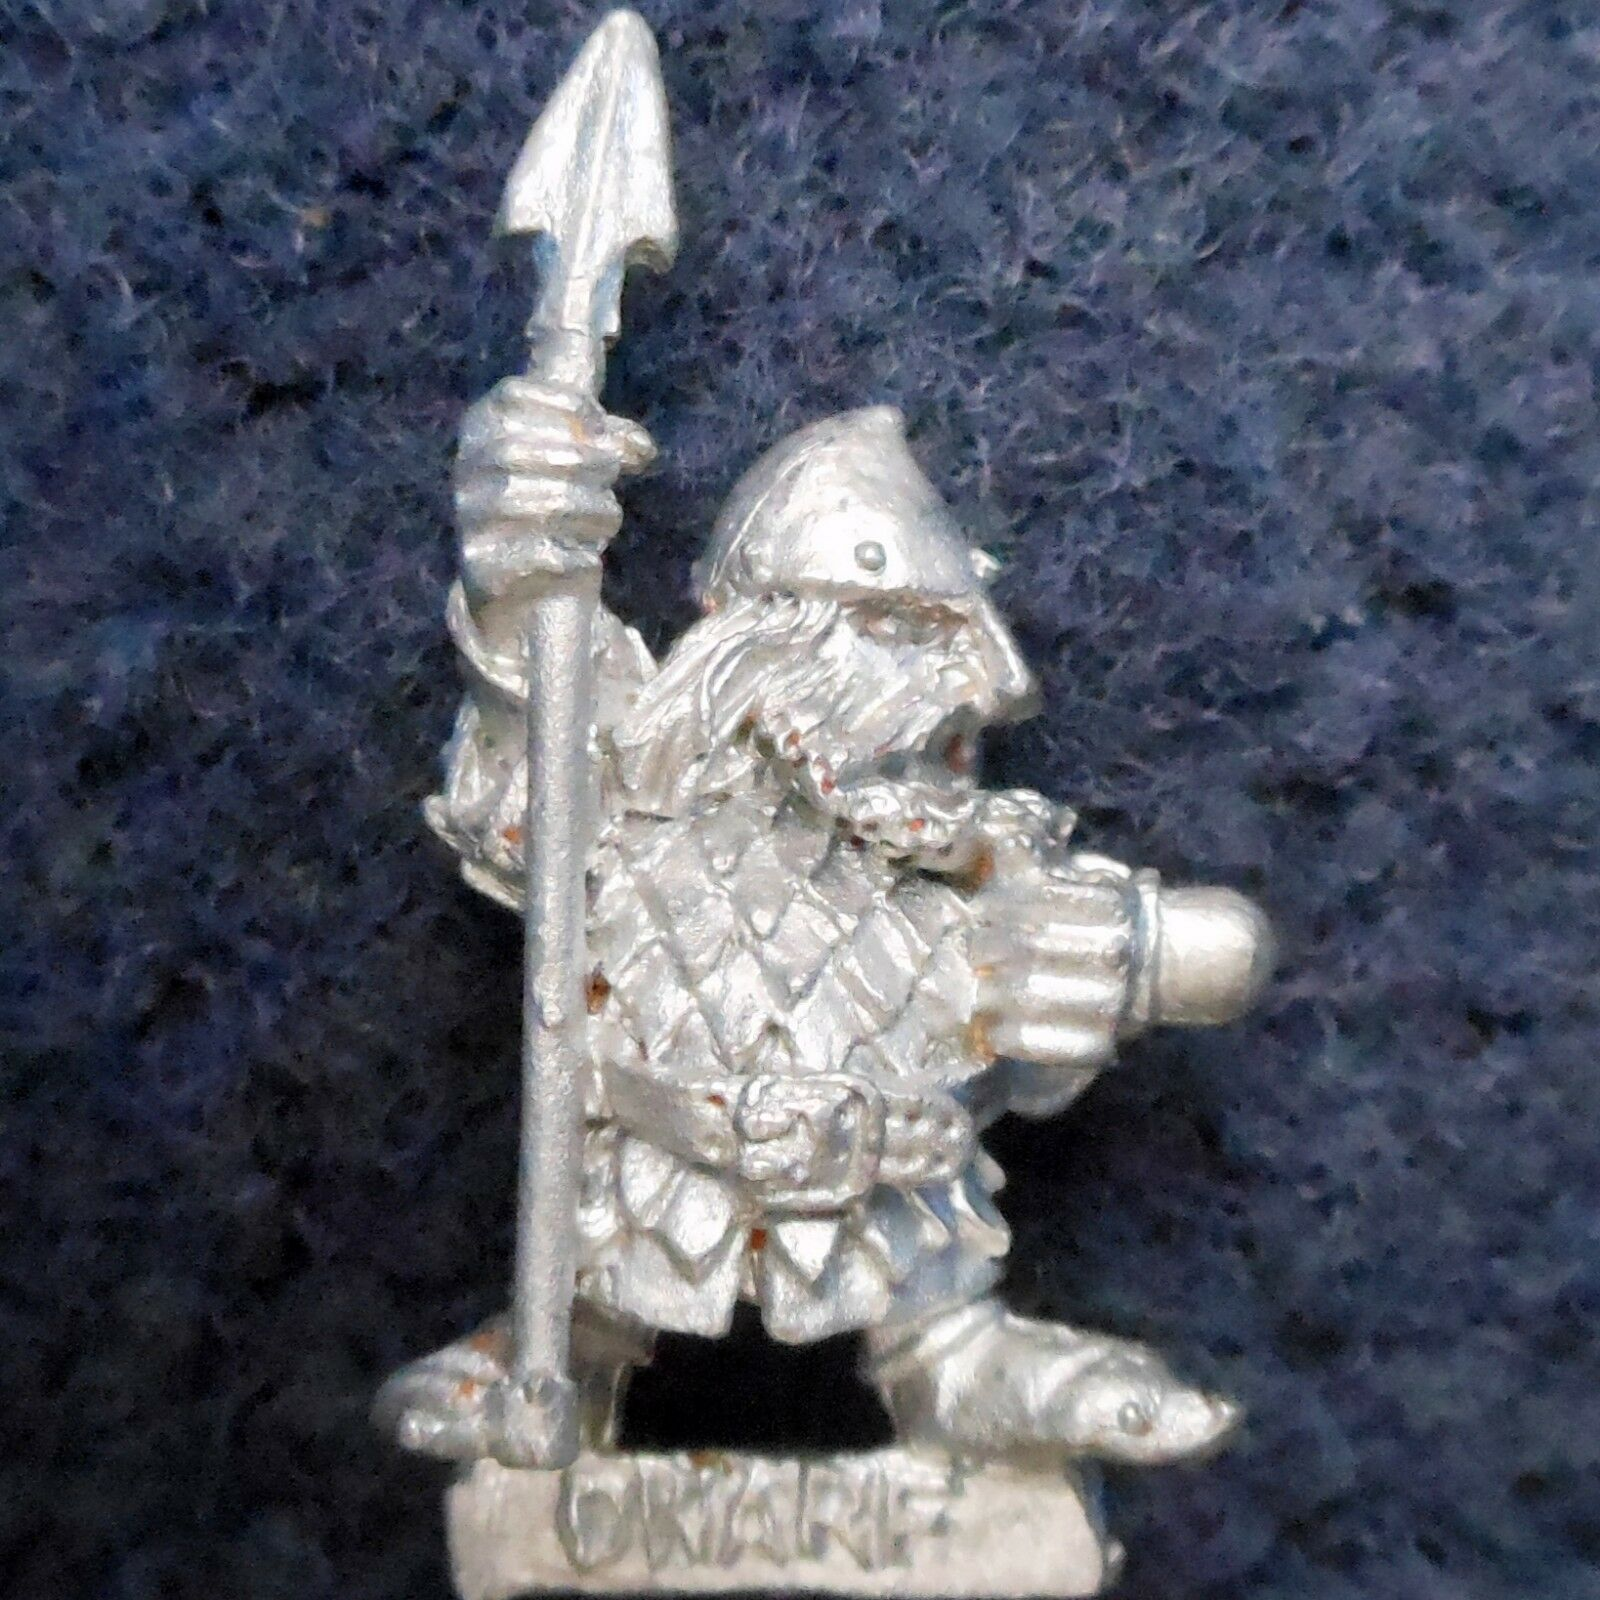 1985 Dwarf ME33 Alternative Spear 1 Lord of the Rings Variant Citadel AD&D LOTR